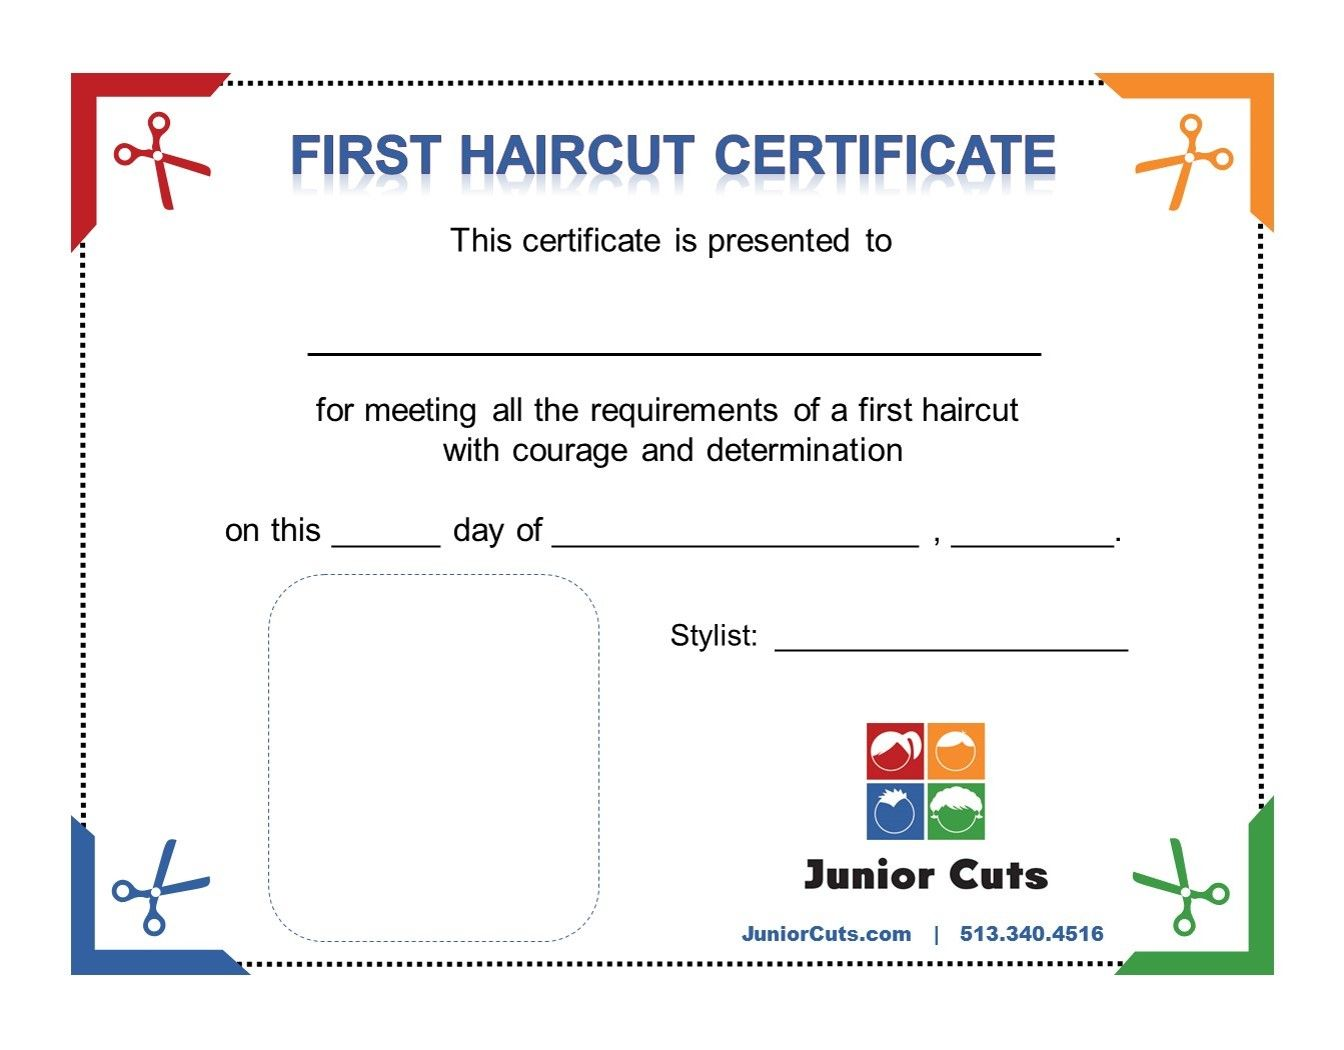 Every first haircut at junior cuts receives a commemorative every first haircut at junior cuts receives a commemorative certificate and a souvenir lock of hair 1betcityfo Gallery